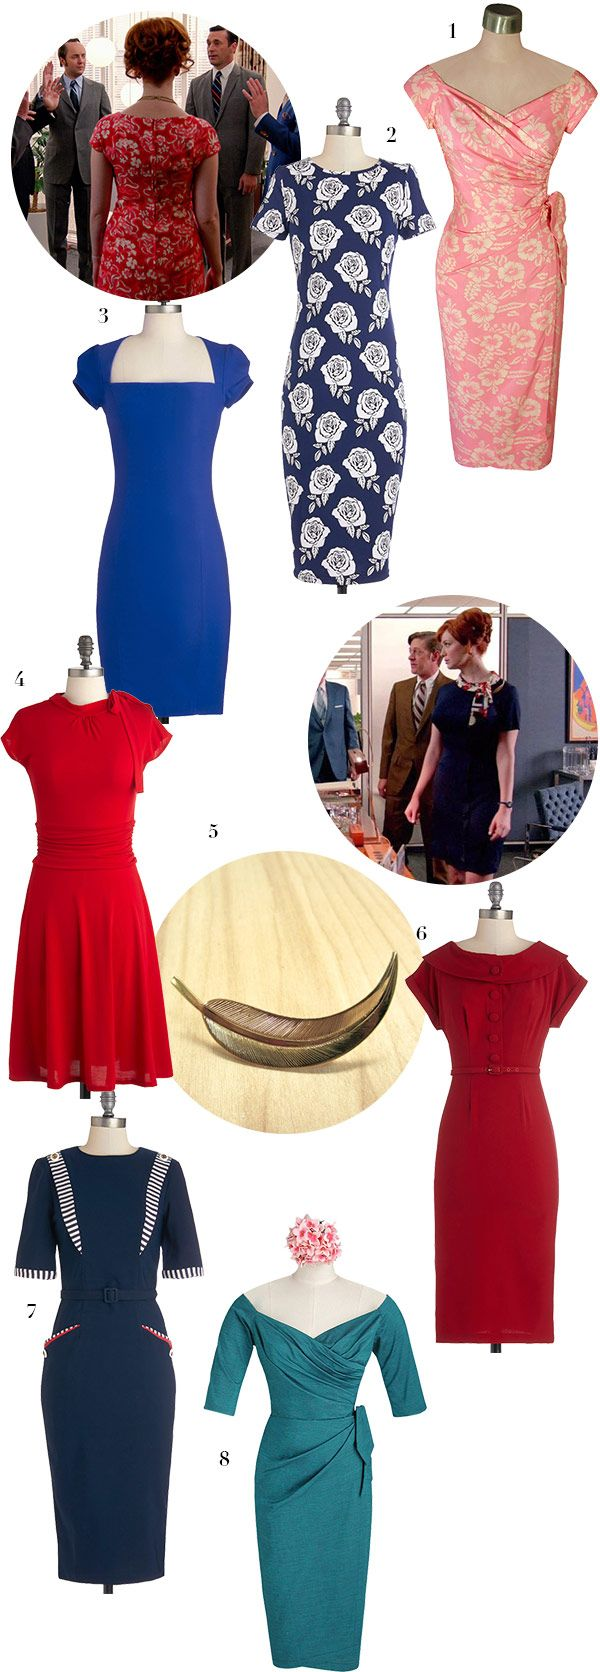 Get Joan's Style from Mad Men Season 7 via WeeBirdy.com. #Joan #MadMen #Fashion #MadMenStyle